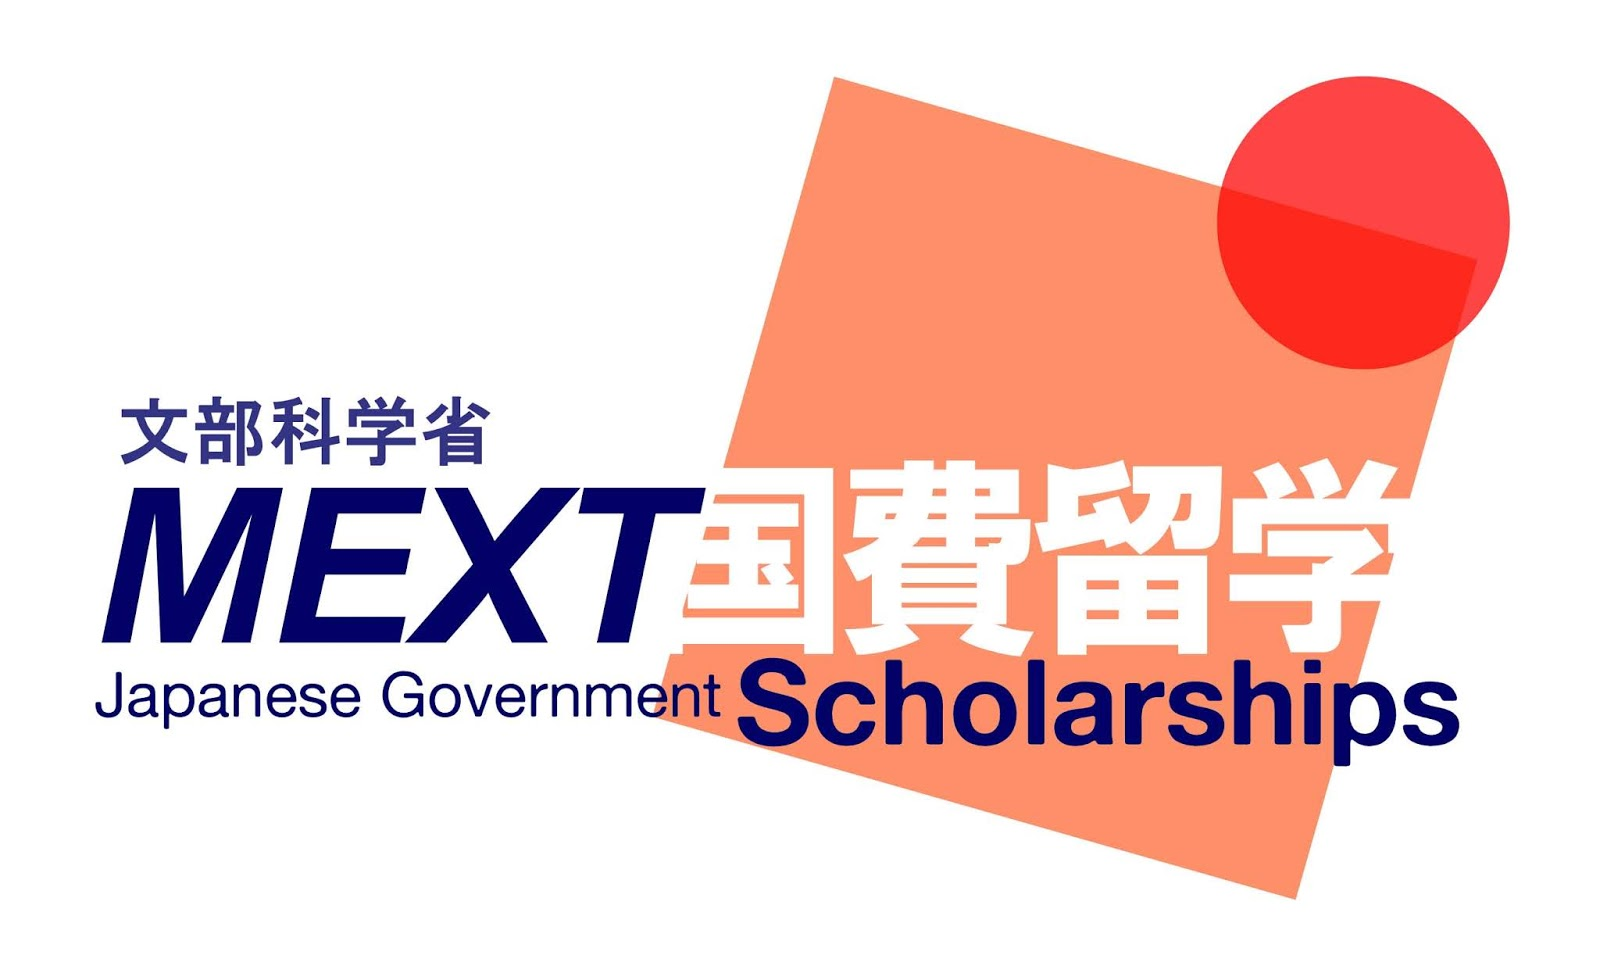 Japanese Government (MEXT) Scholarships for Teachers